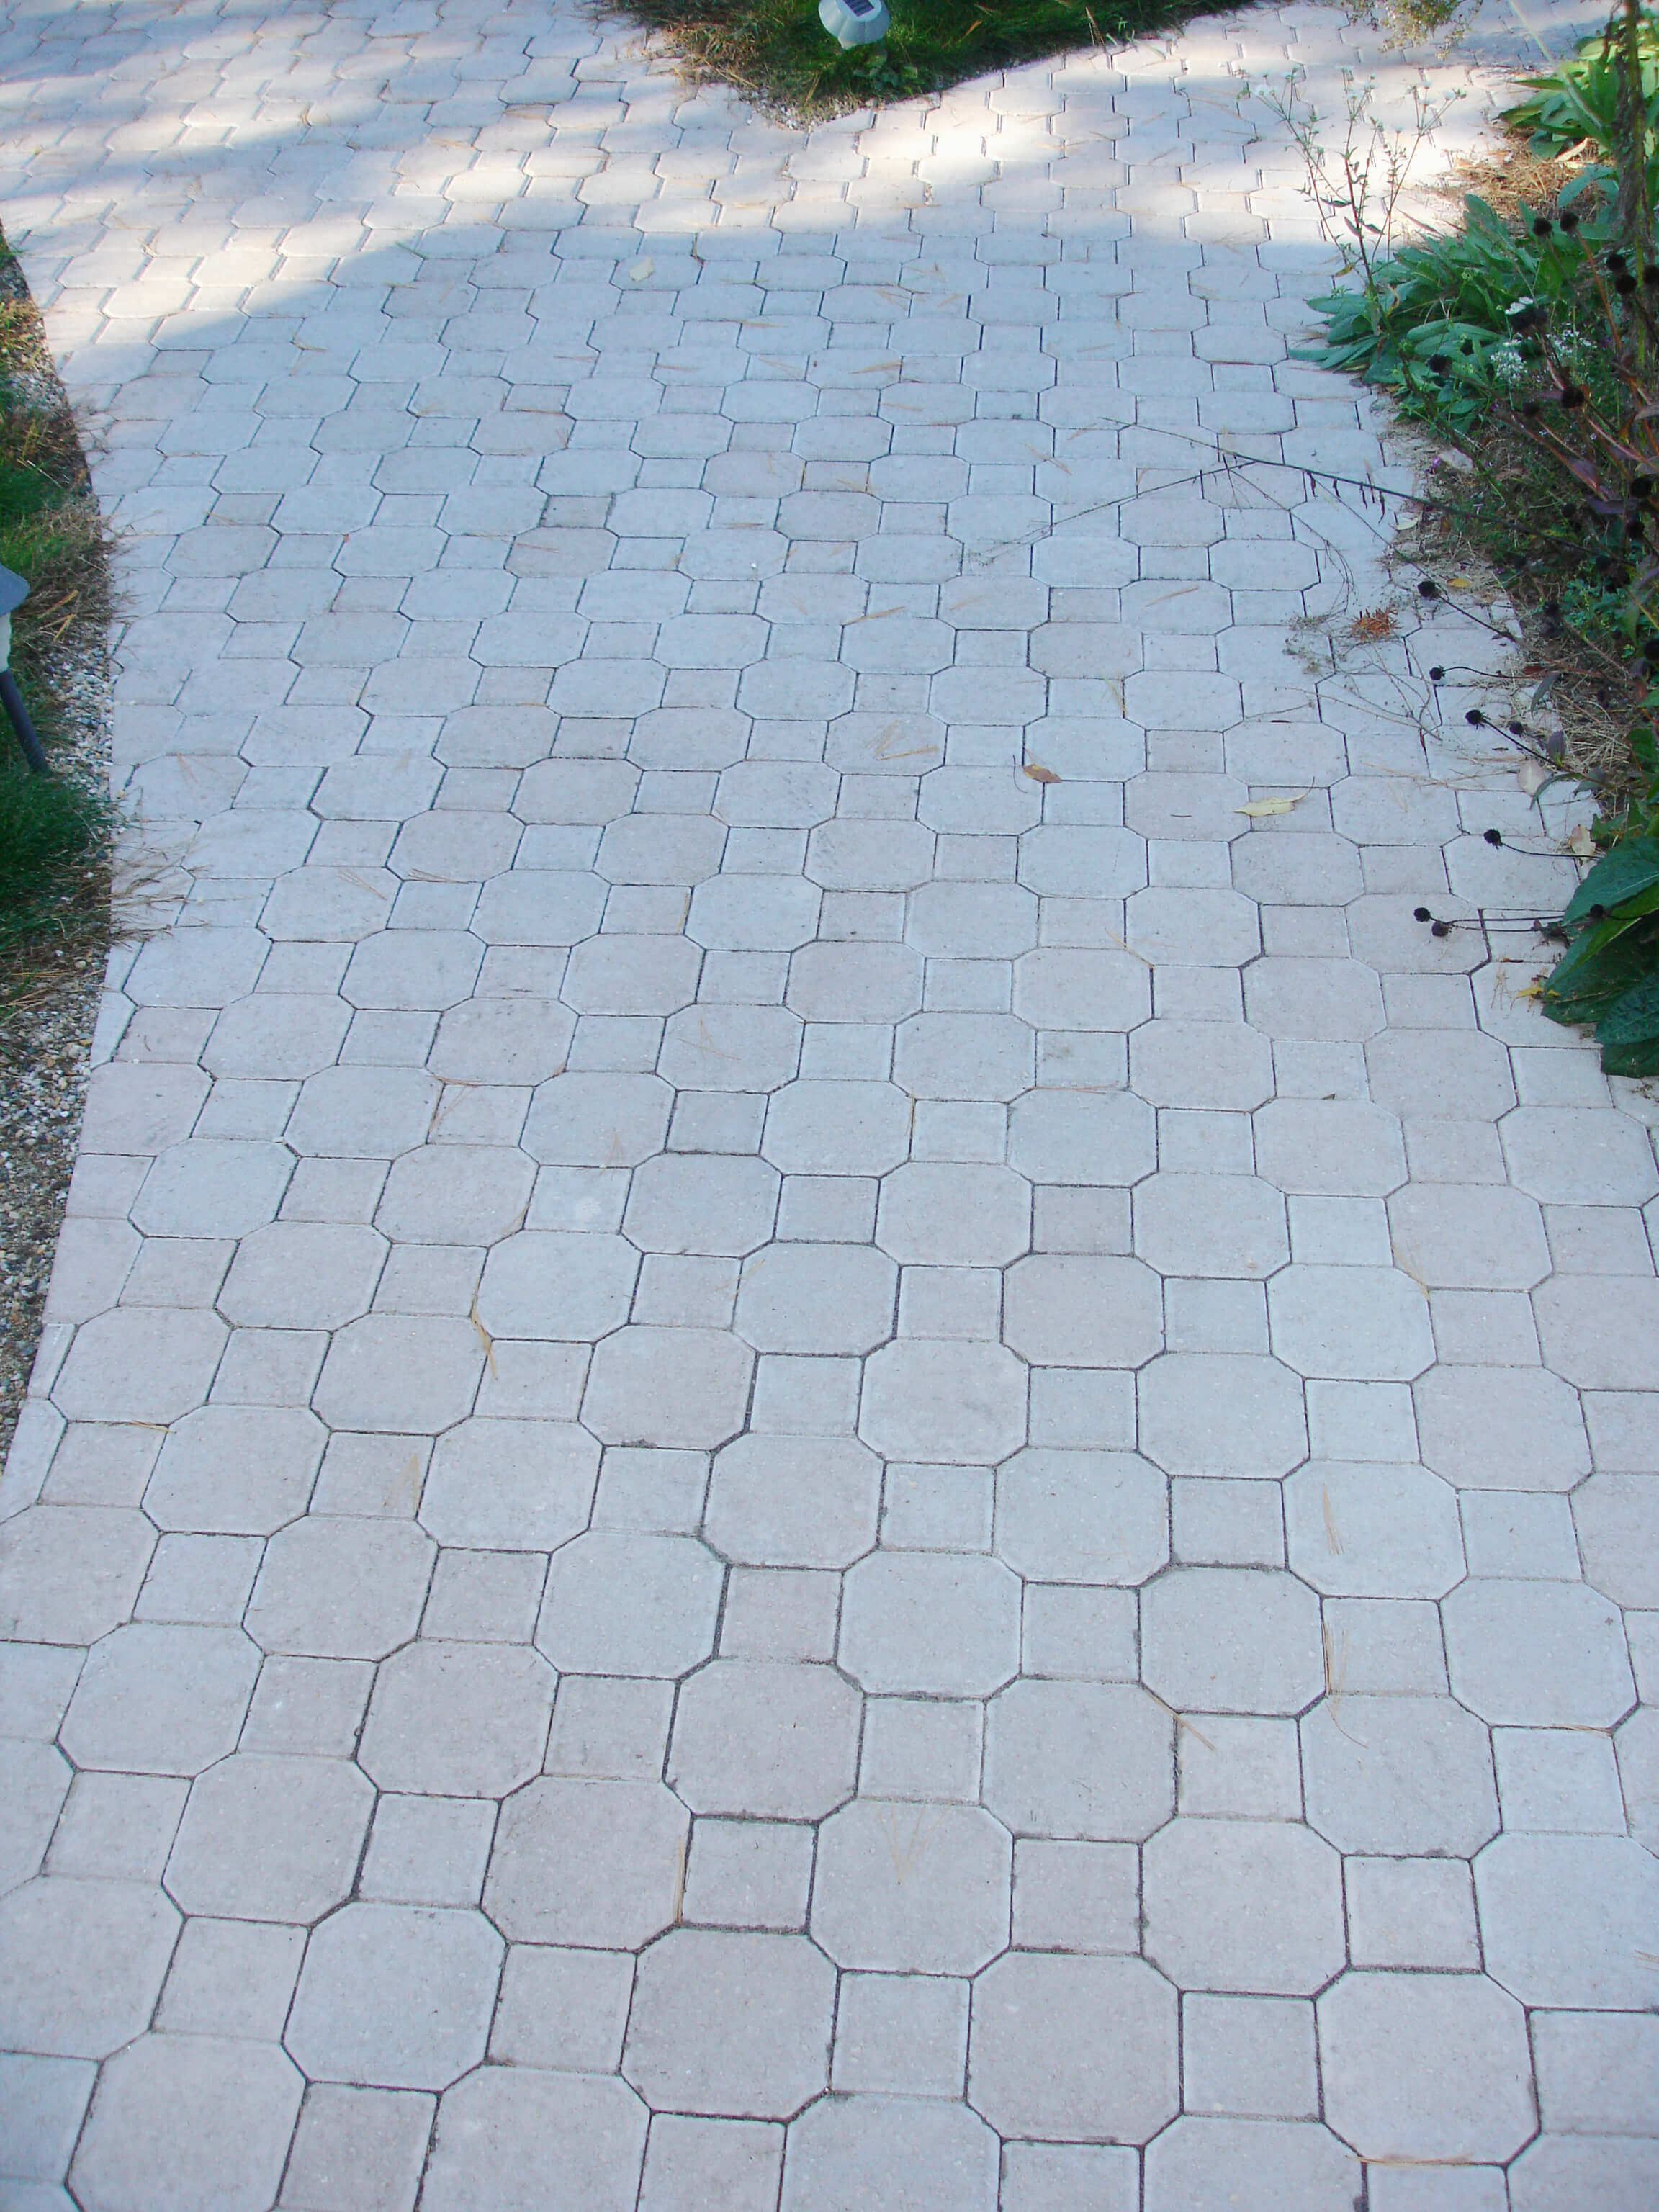 Uni Decor Pavers m. gerardi construction - masonry and landscape services - stoneham ma